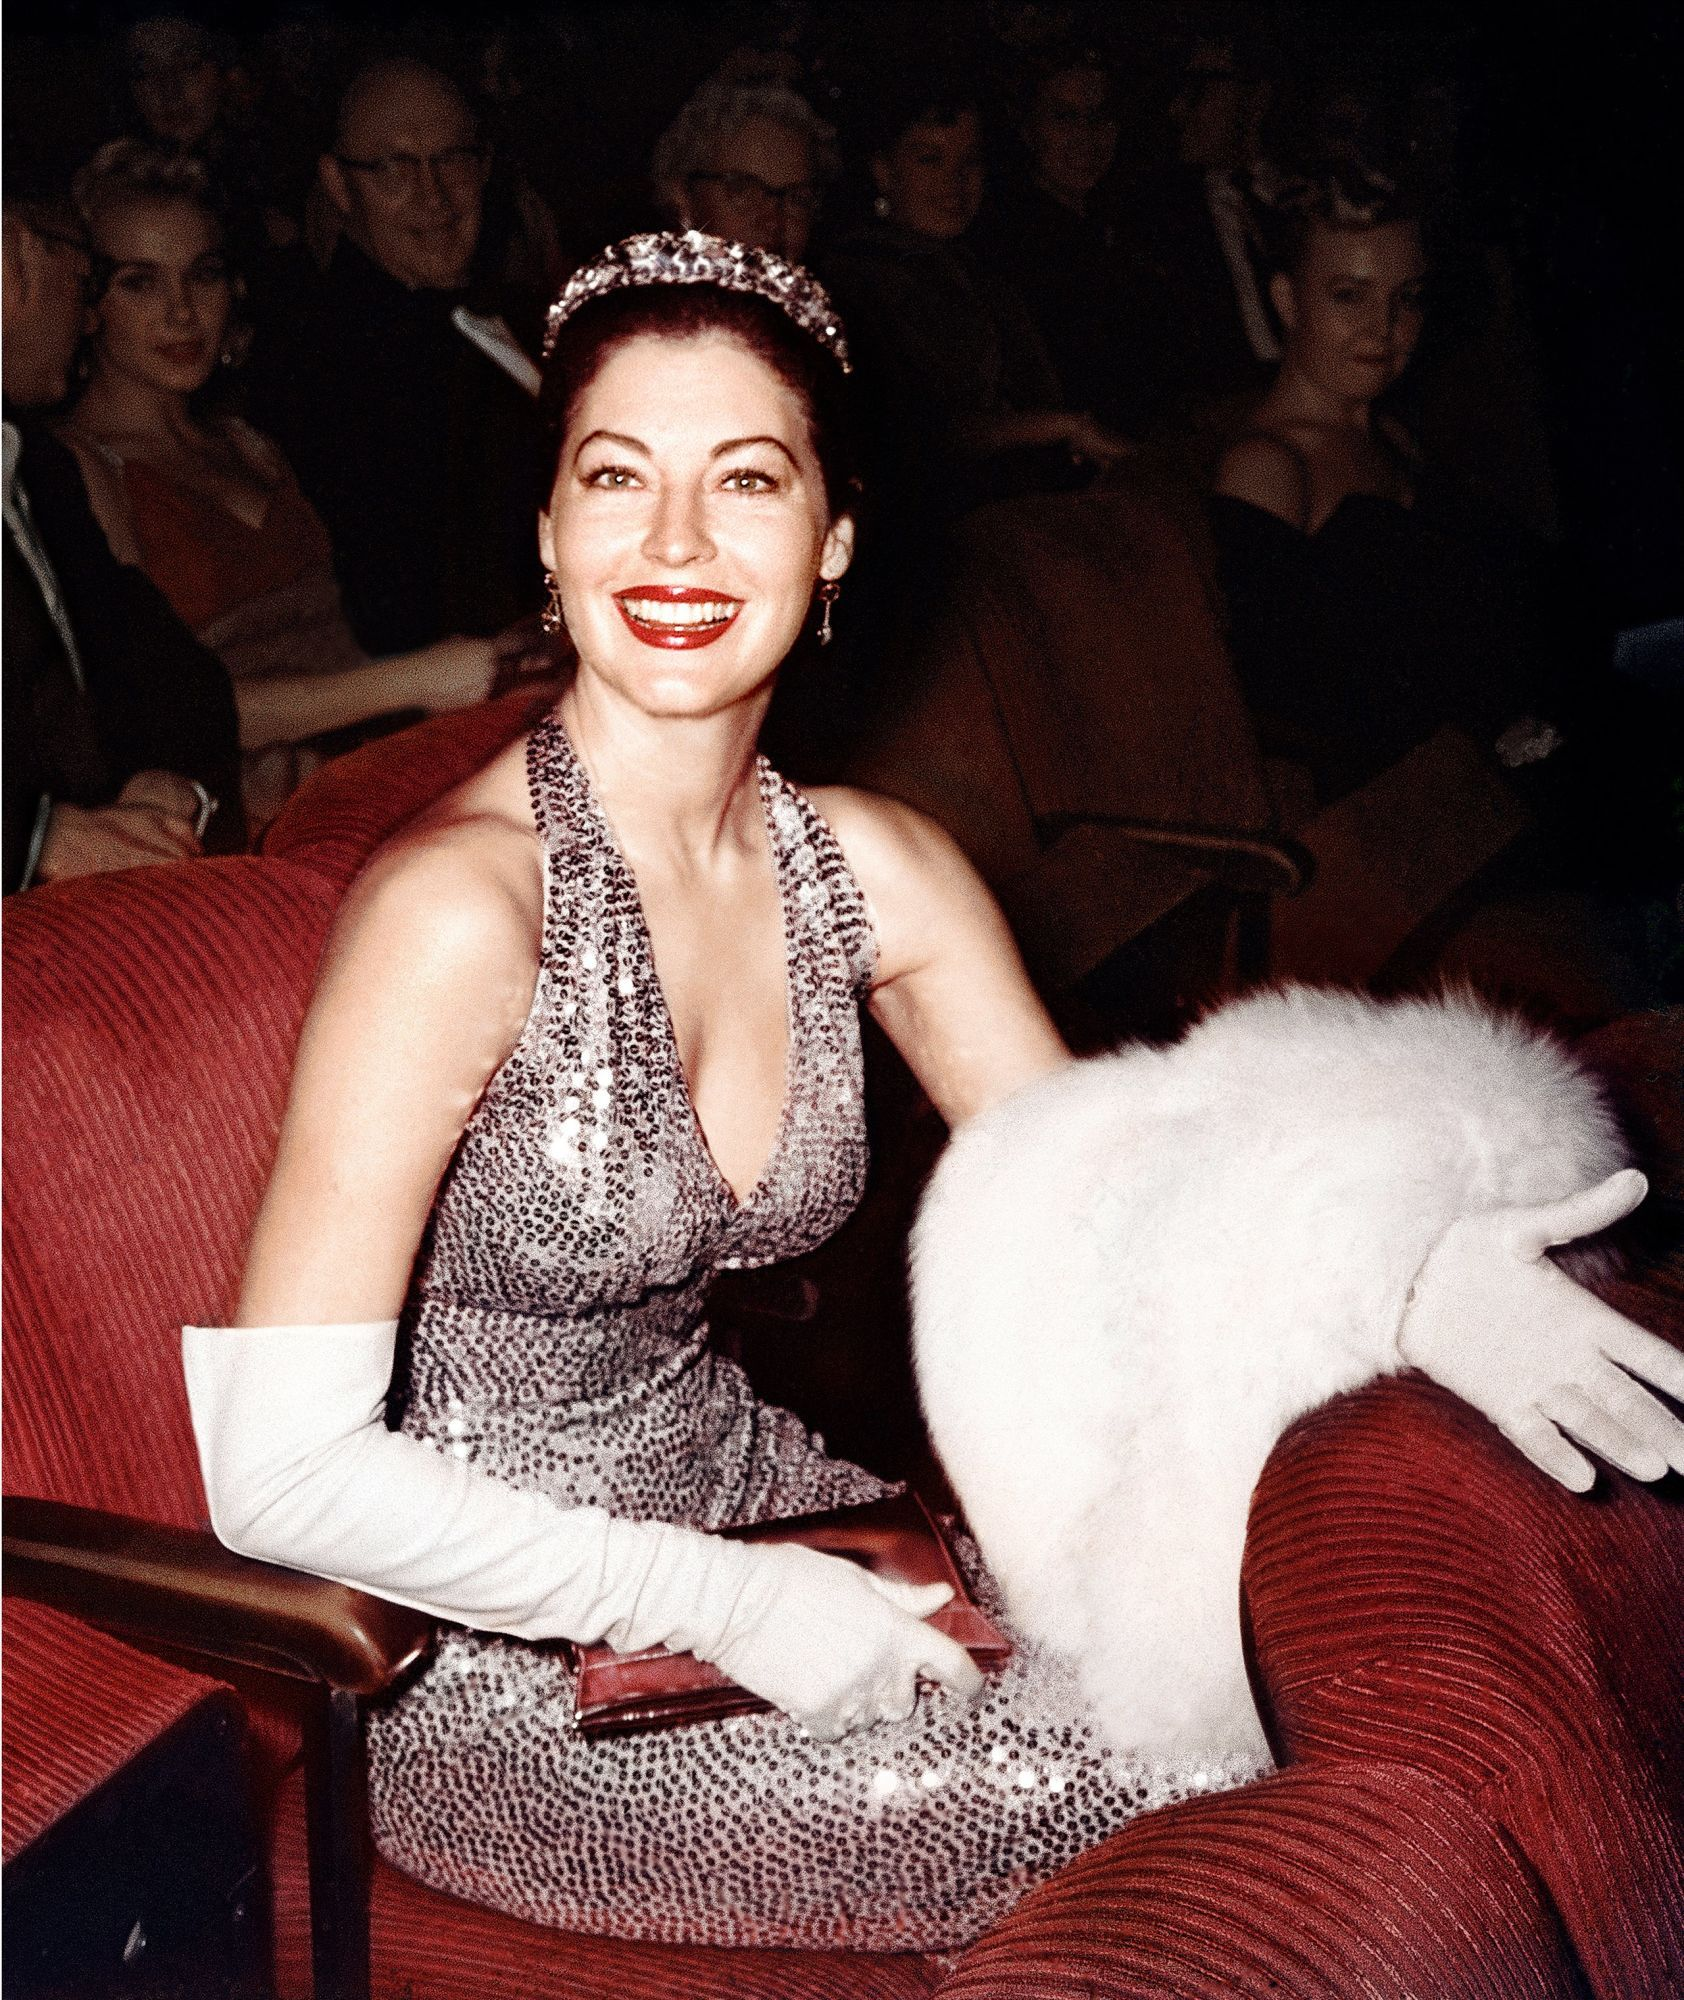 Ava Gardner: Ava Gardner decked out in a tiara and evening gown for the Academy Awards ceremony in 1960.